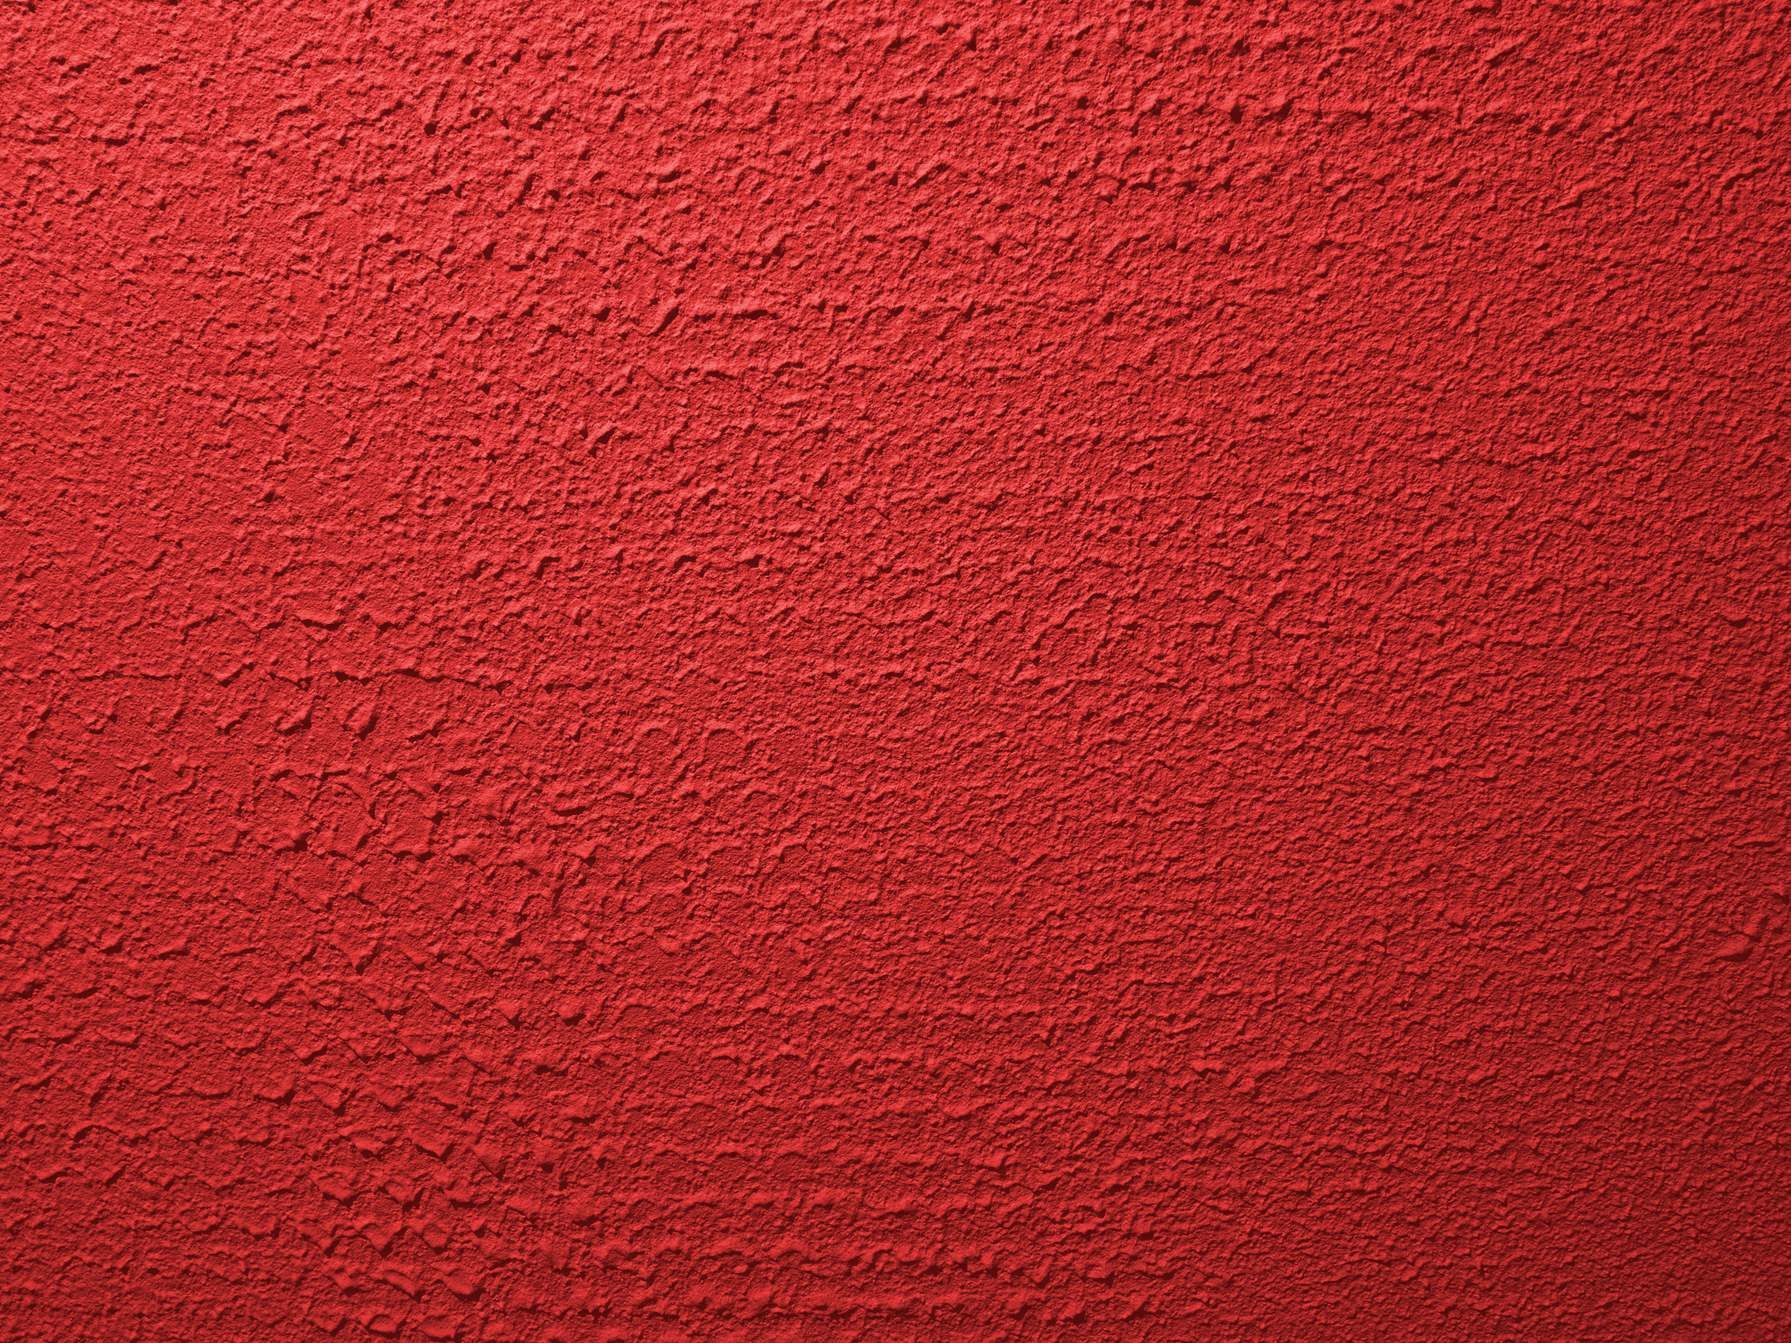 Red Concrete Wall Text...